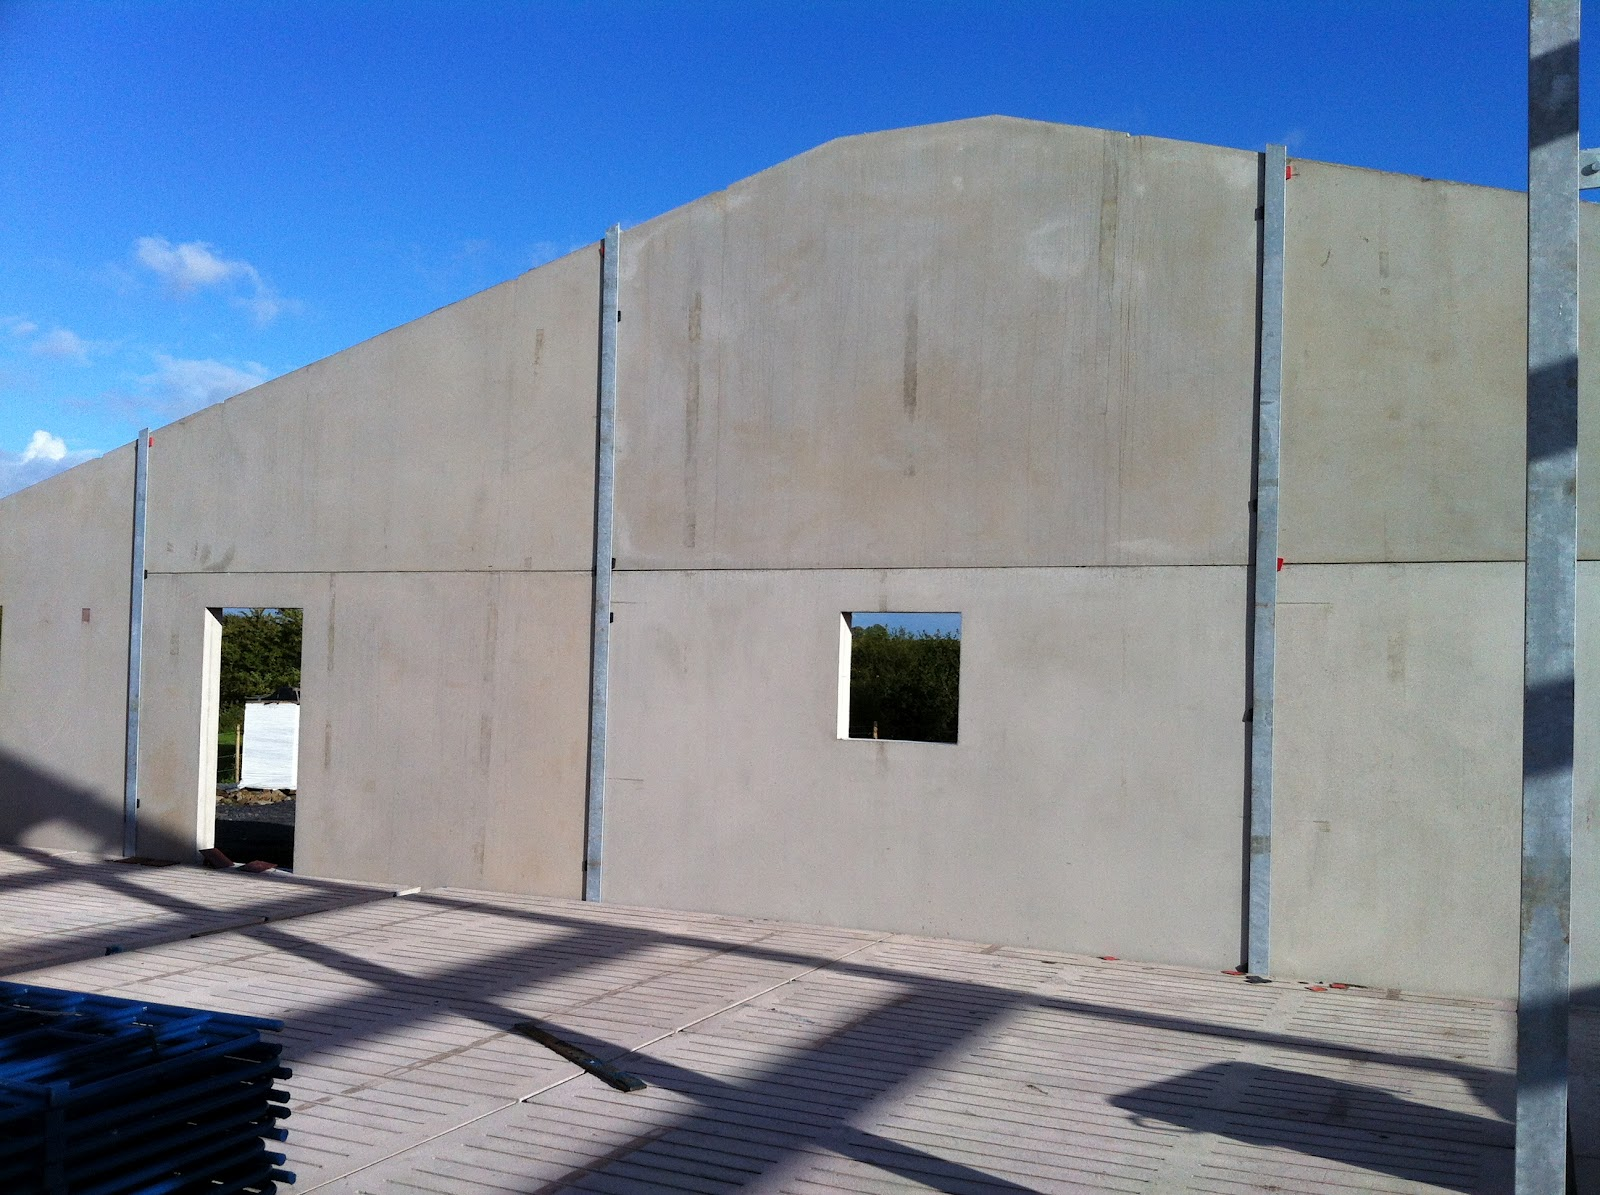 Wright quarry products monaghan concrete wall panels - Precast concrete houses ...